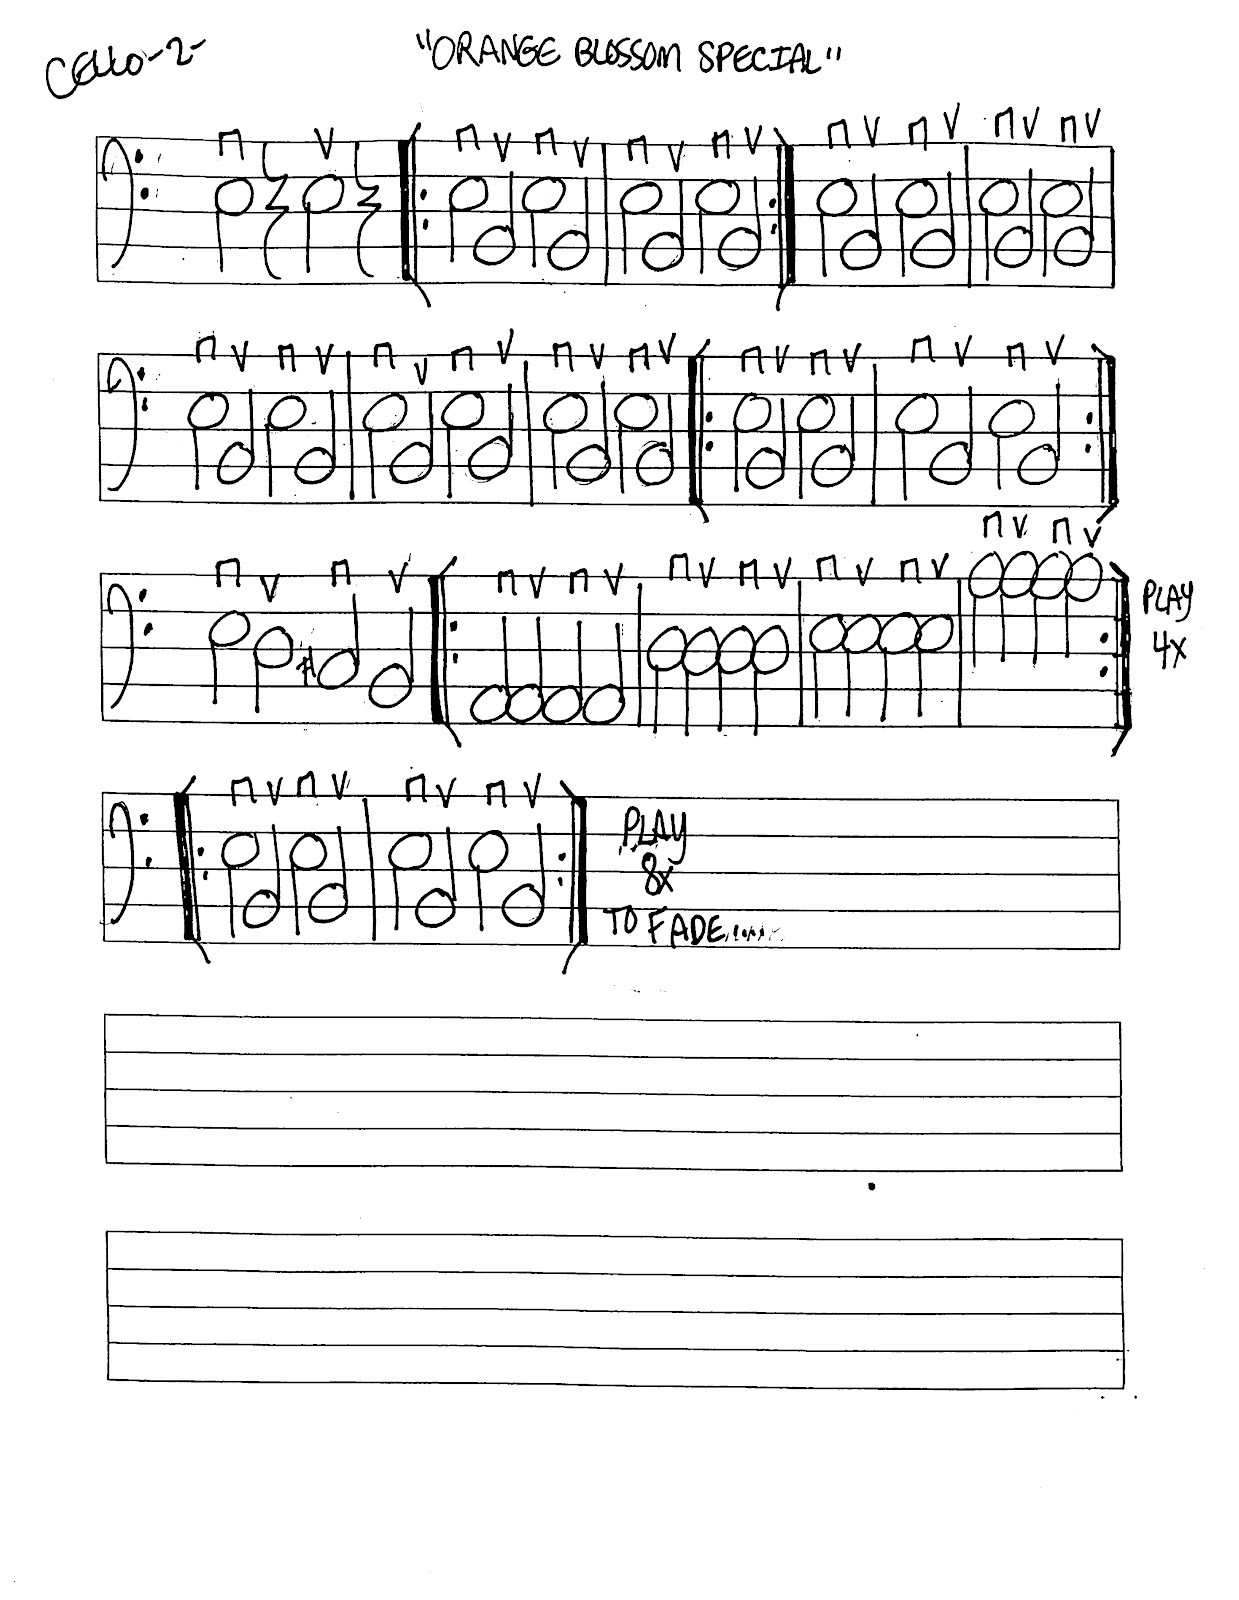 Miss Jacobson S Music Orange Blossom Special Music Worksheets